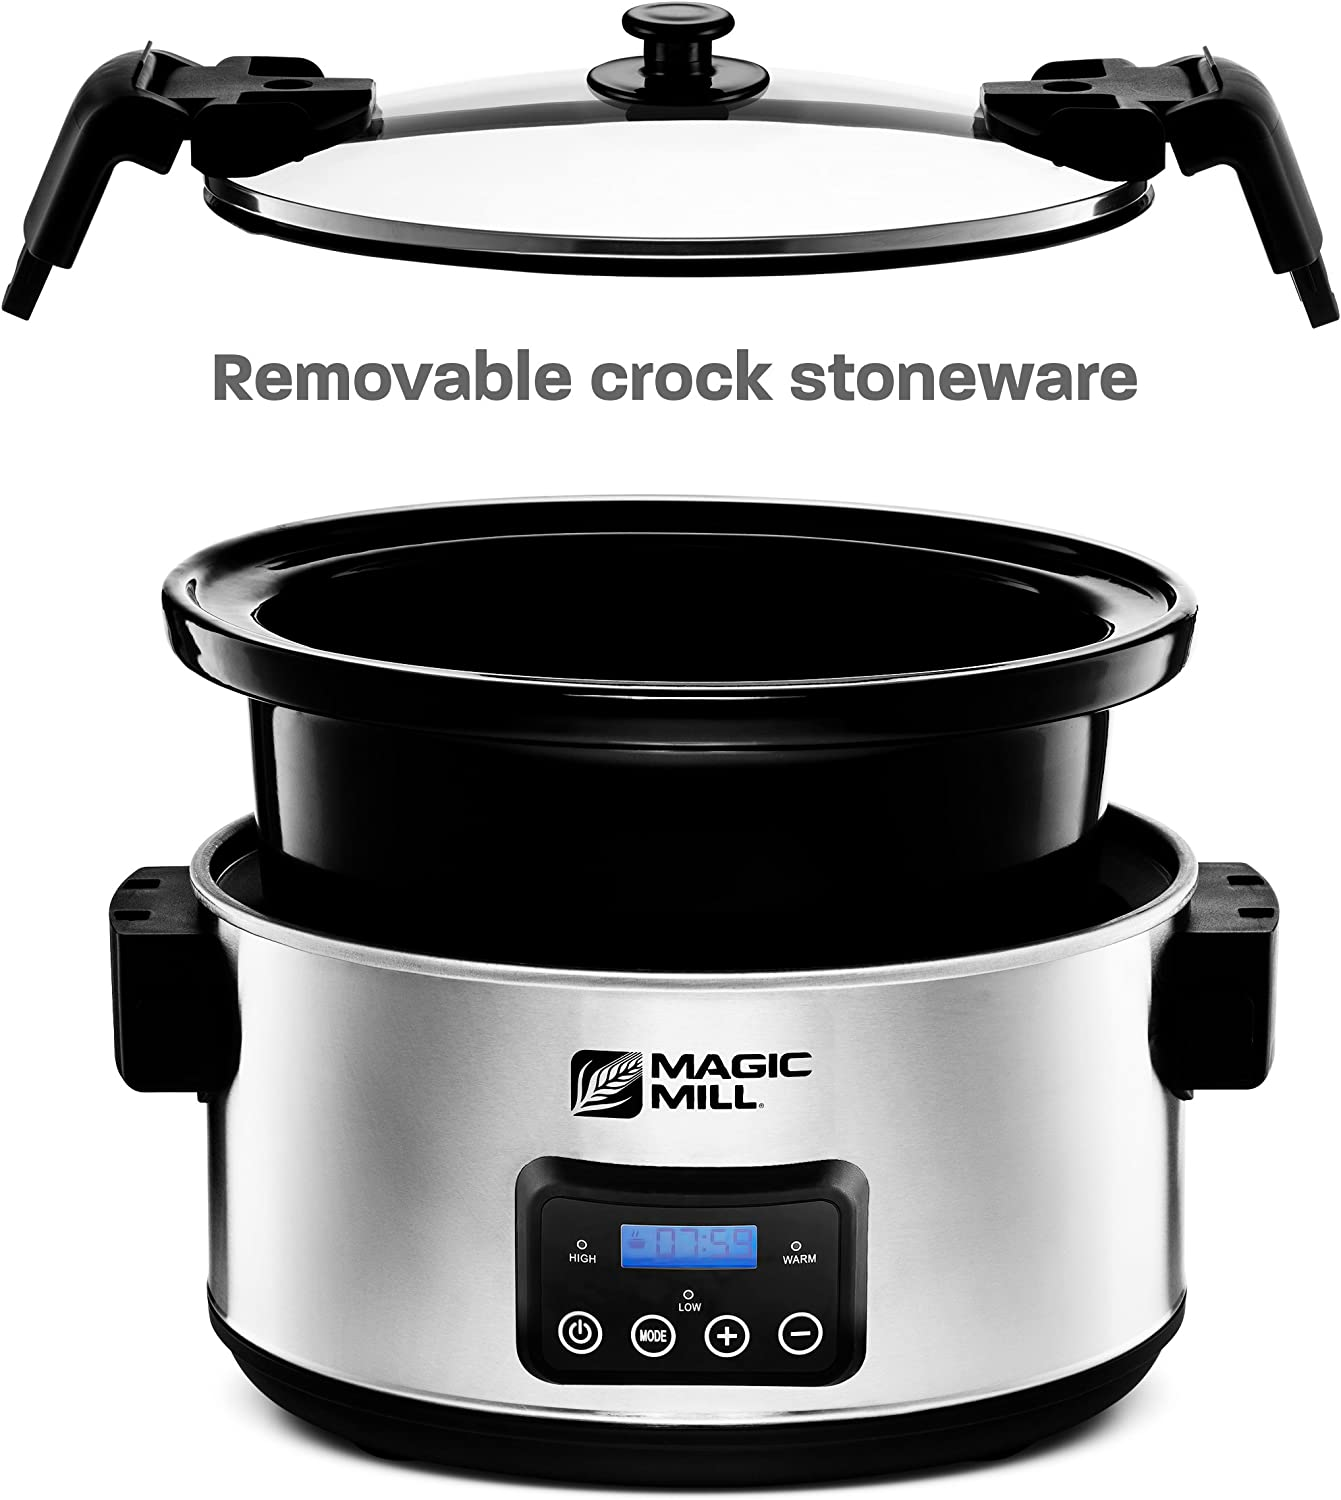 What are the best electric pressure cookers? Magic Mill 8.5 Quart Programmable slow cooker